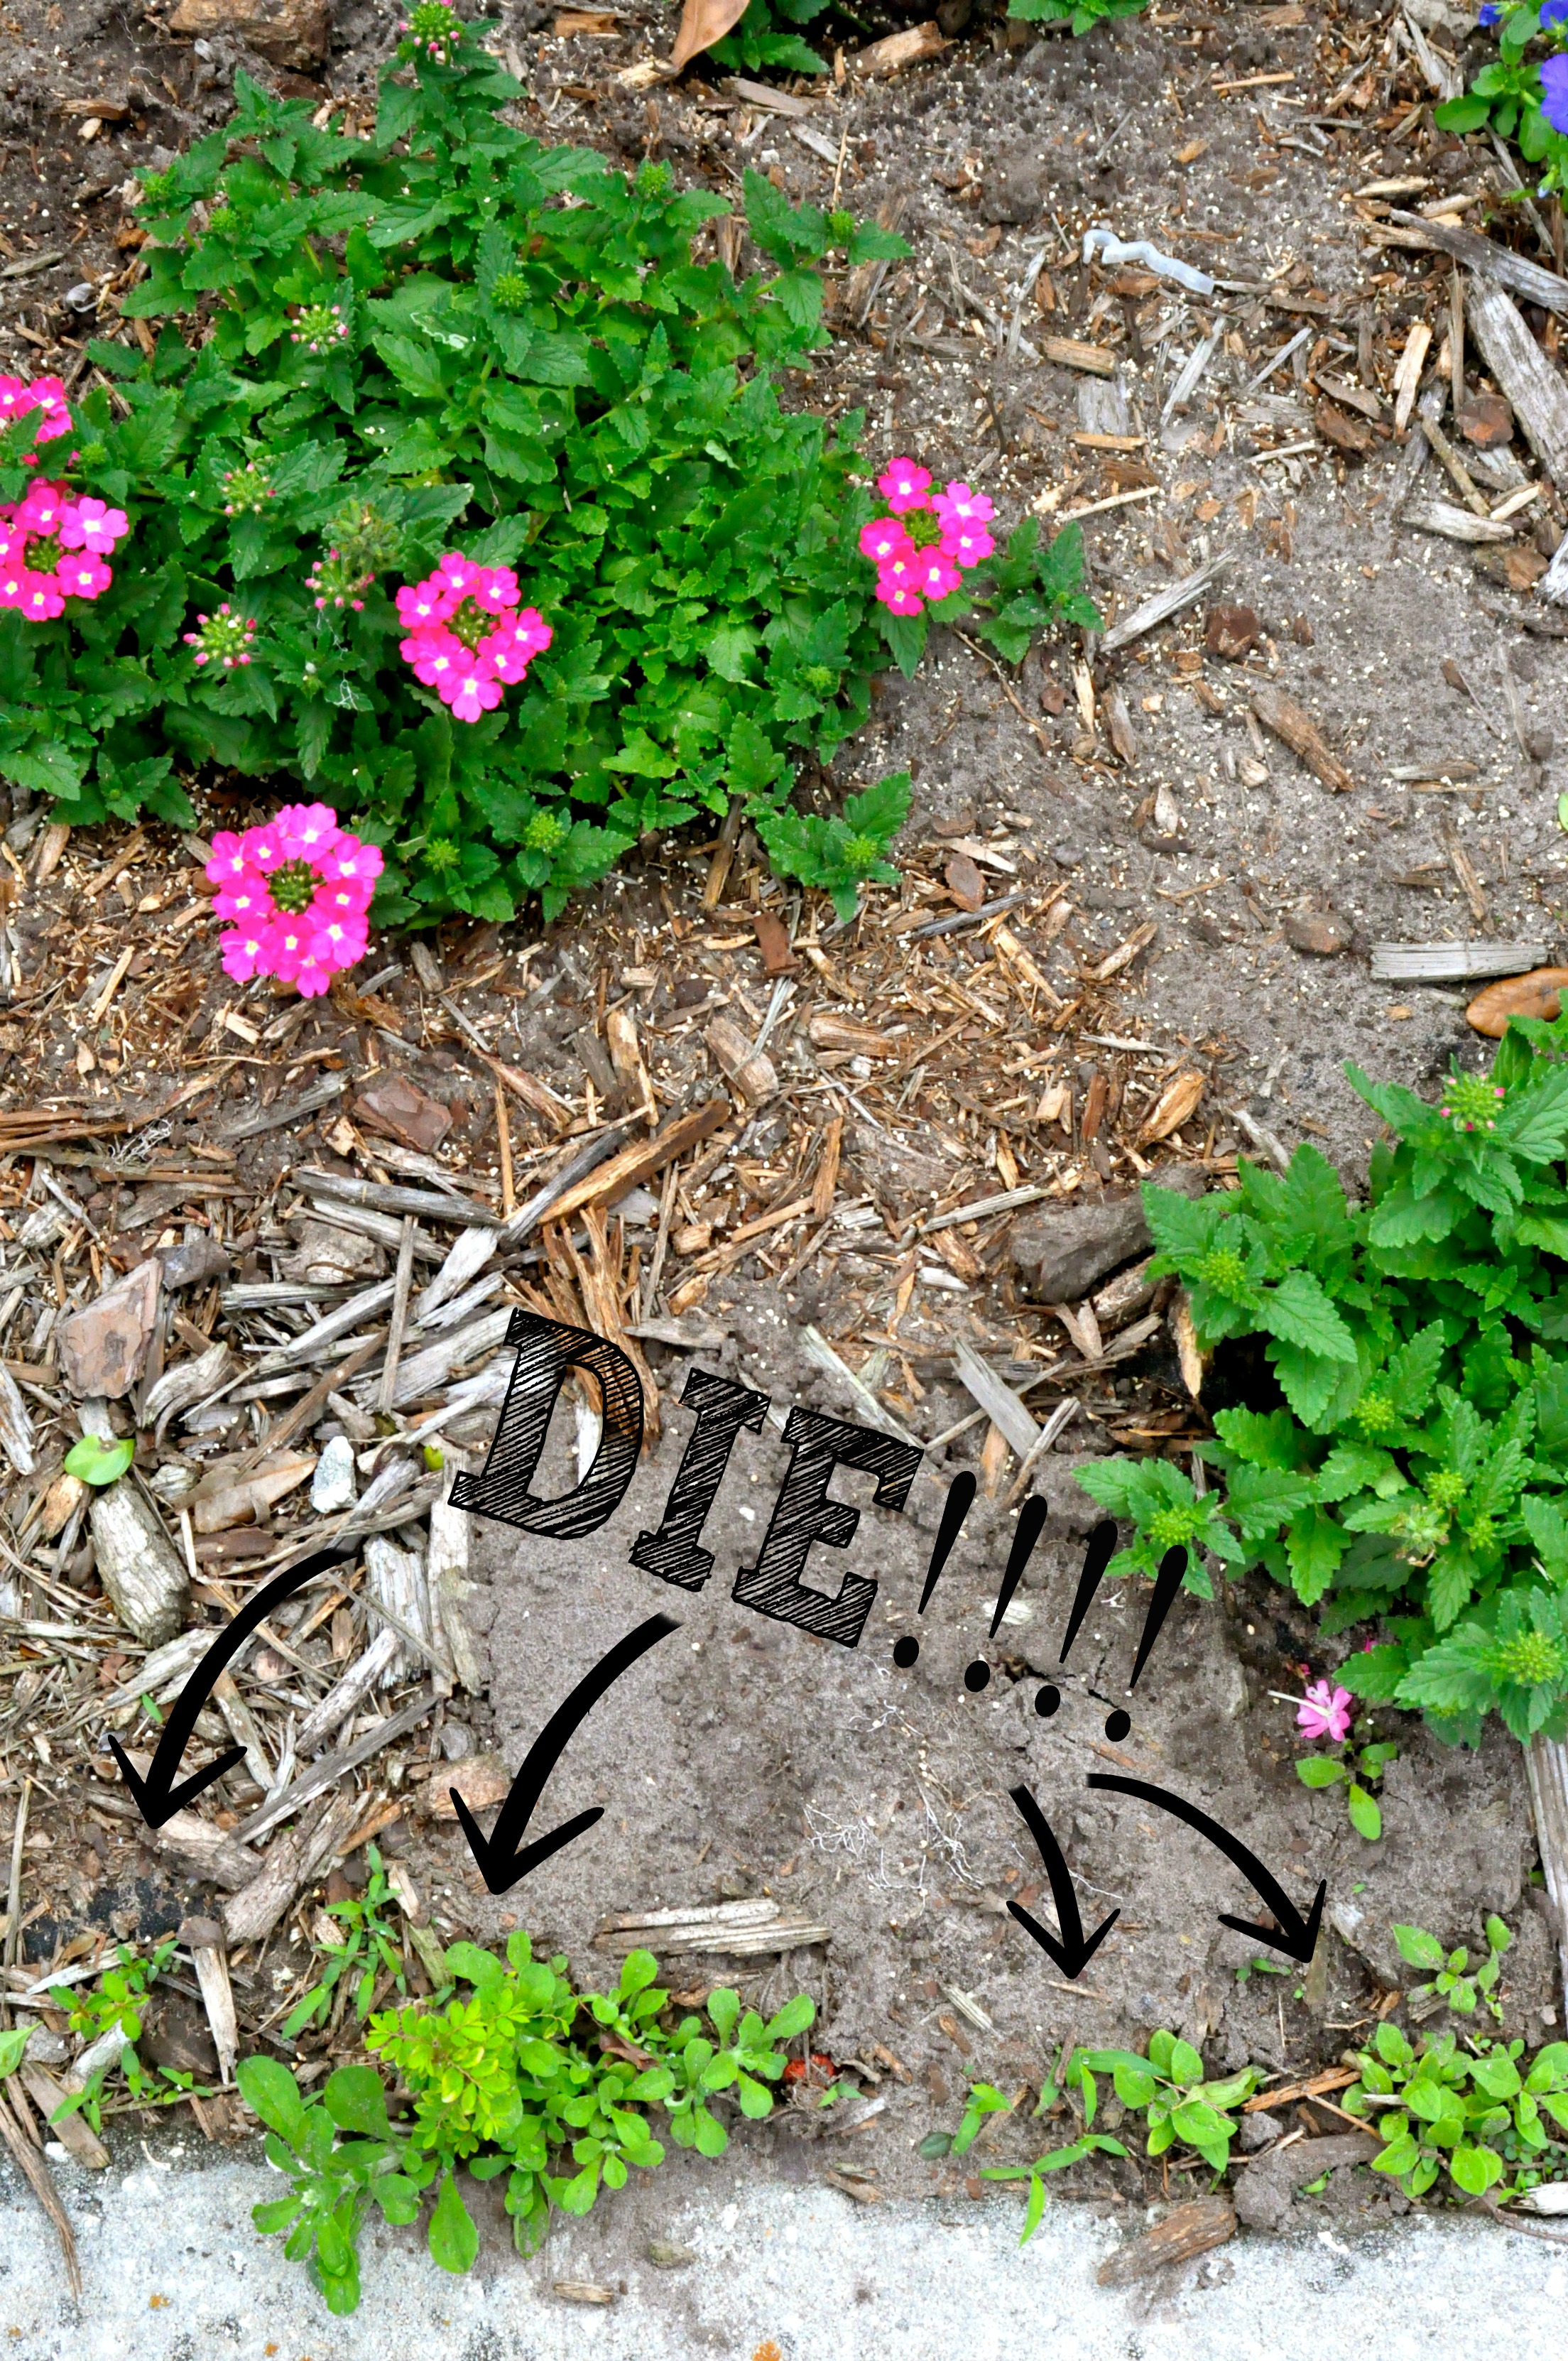 Kill weeds in flower beds - 3 Killer Ways To Get Rid Of Weeds Naturally With Ingredients You Already Have